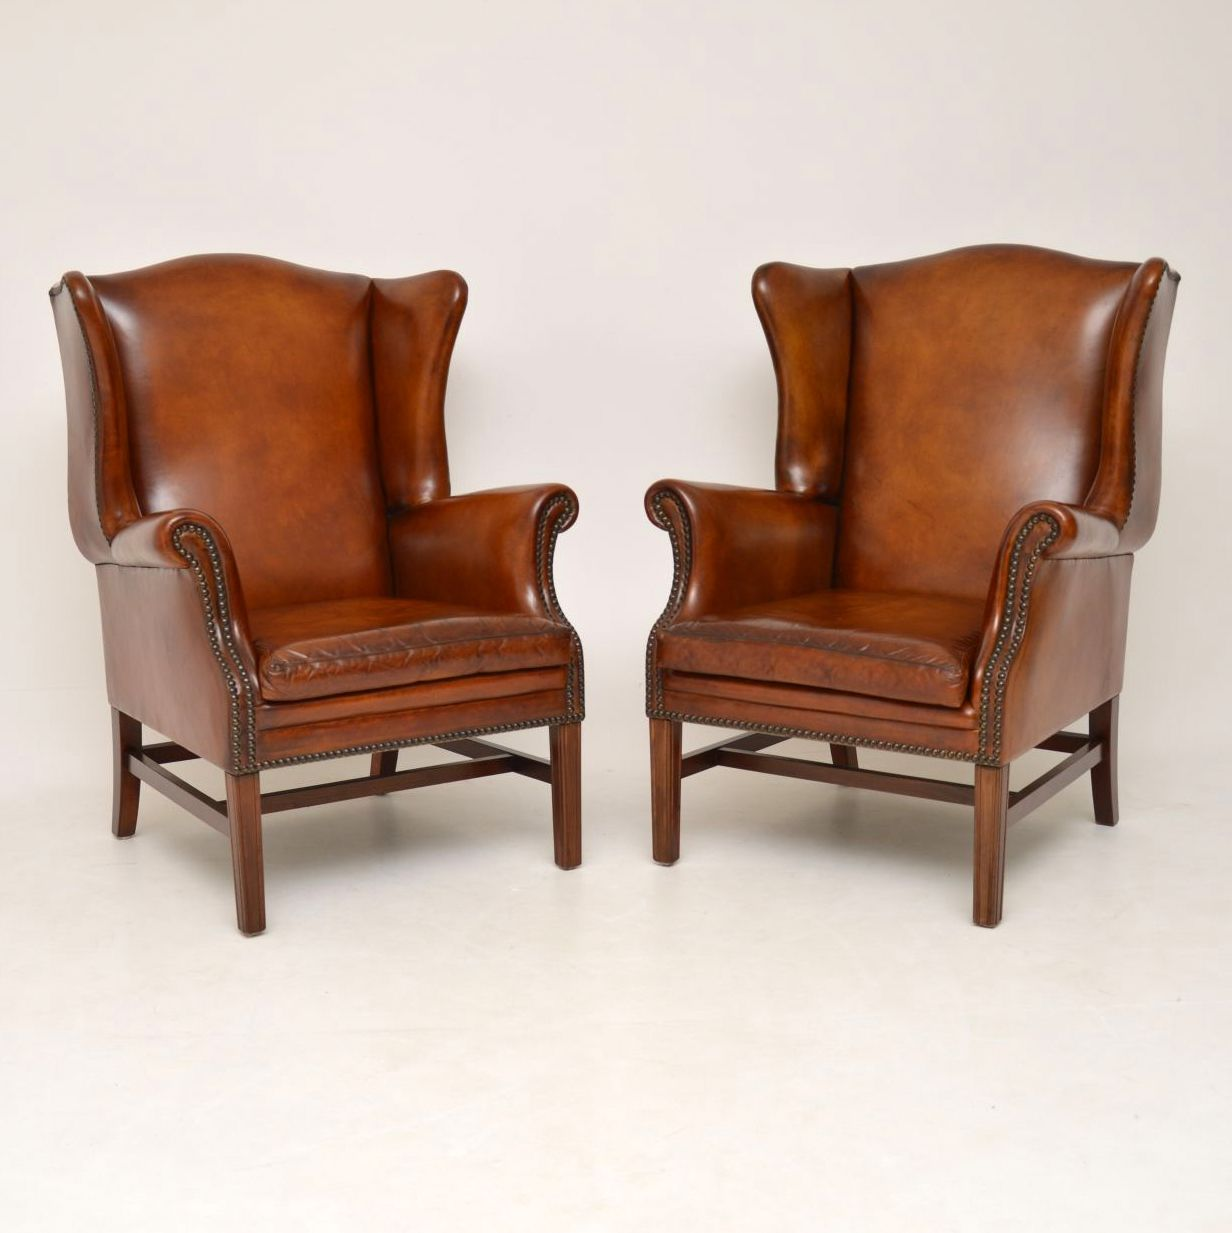 Pair of Antique Swedish Leather Wing Back Armchairs